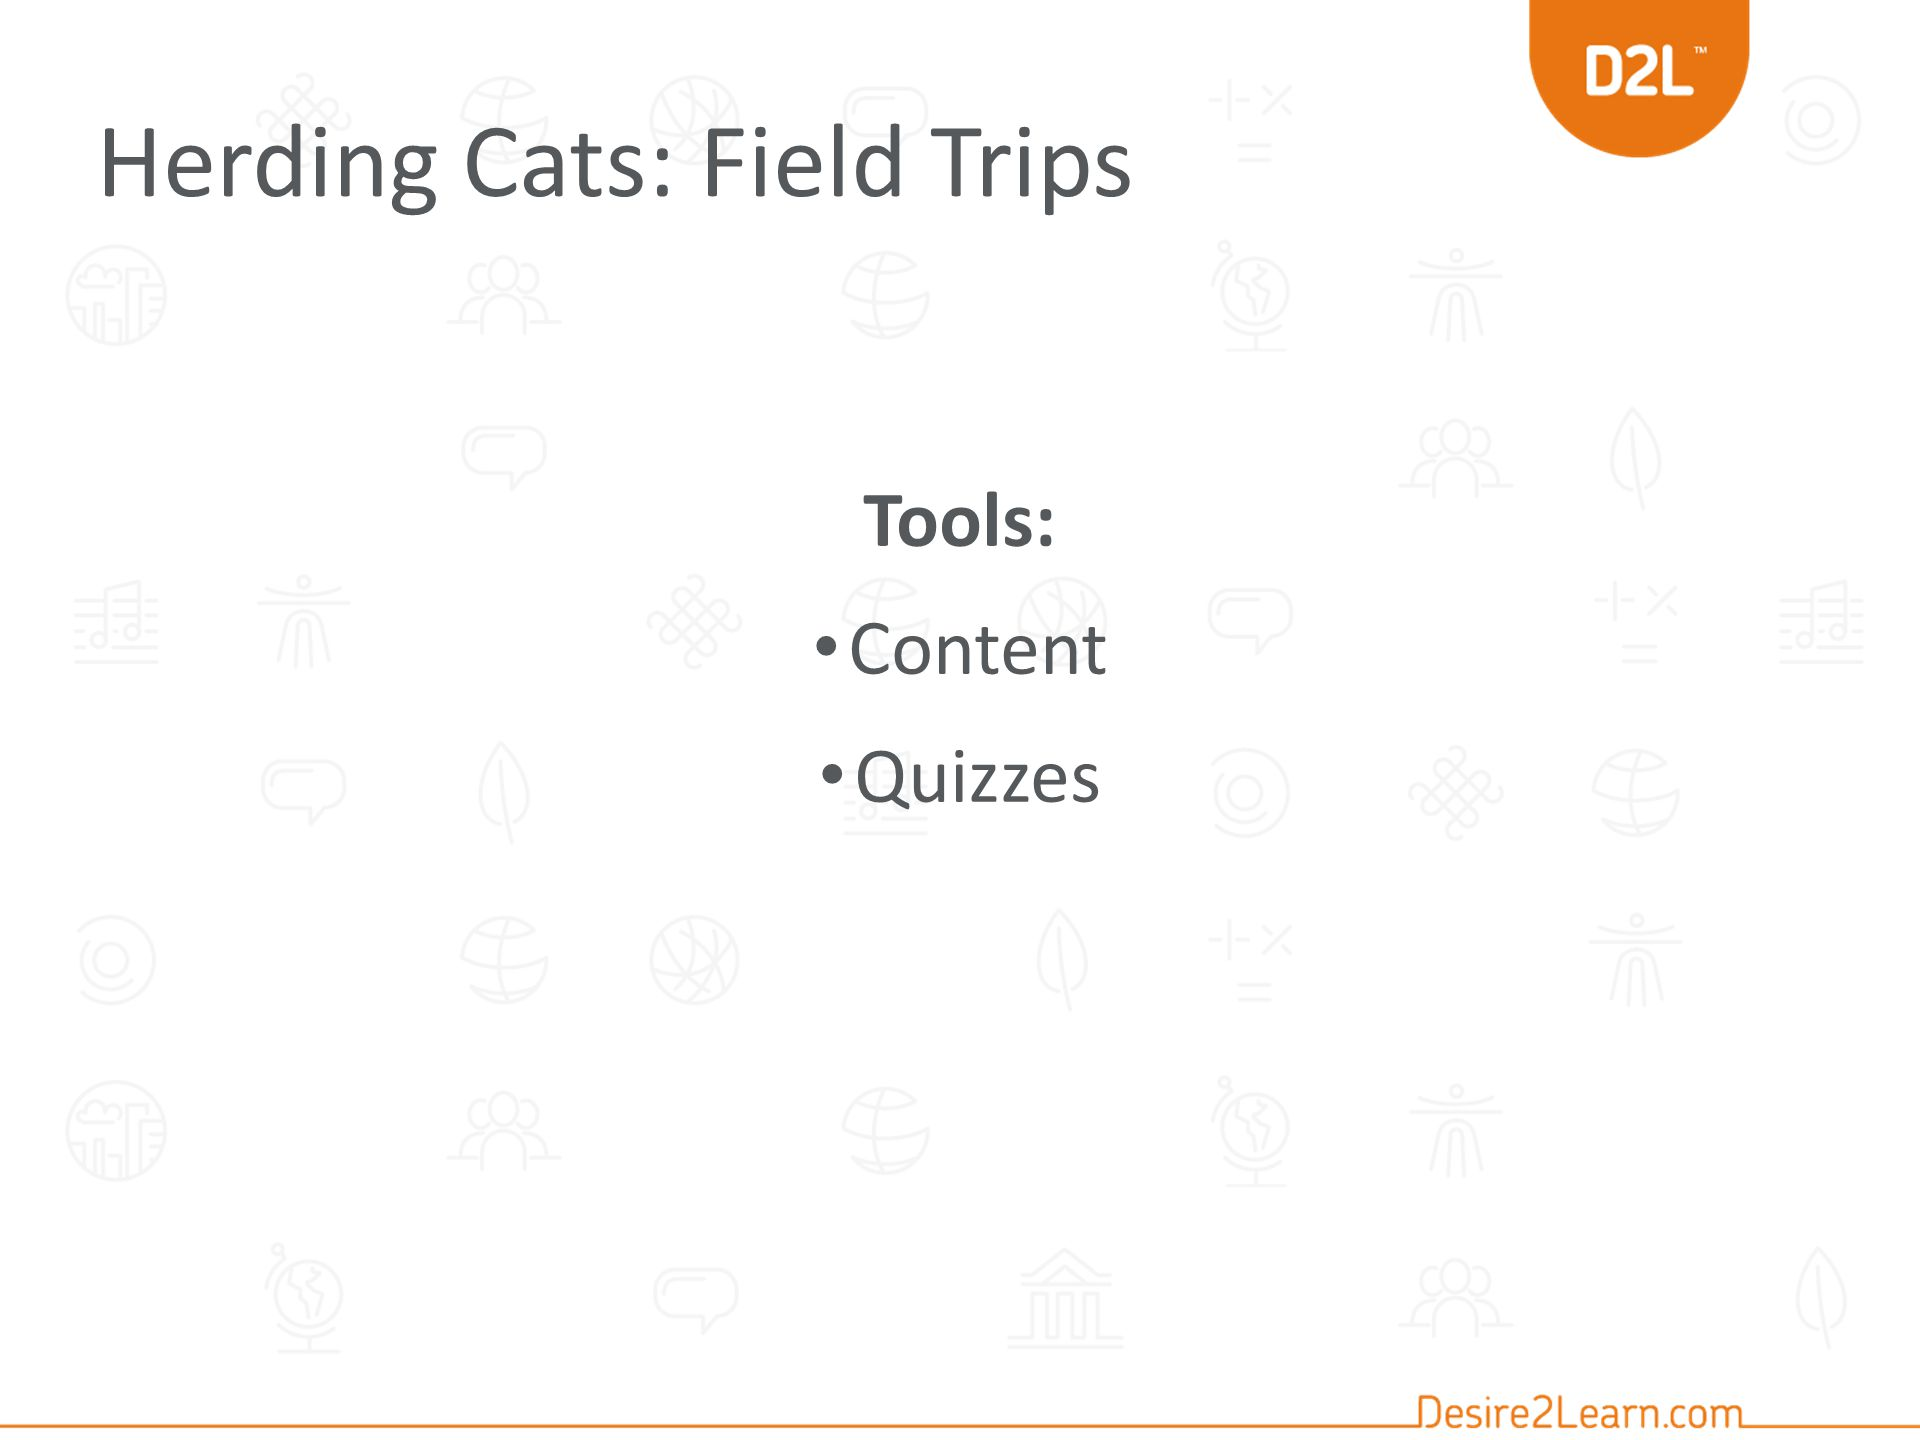 Herding Cats: Field Trips Tools: Content Quizzes